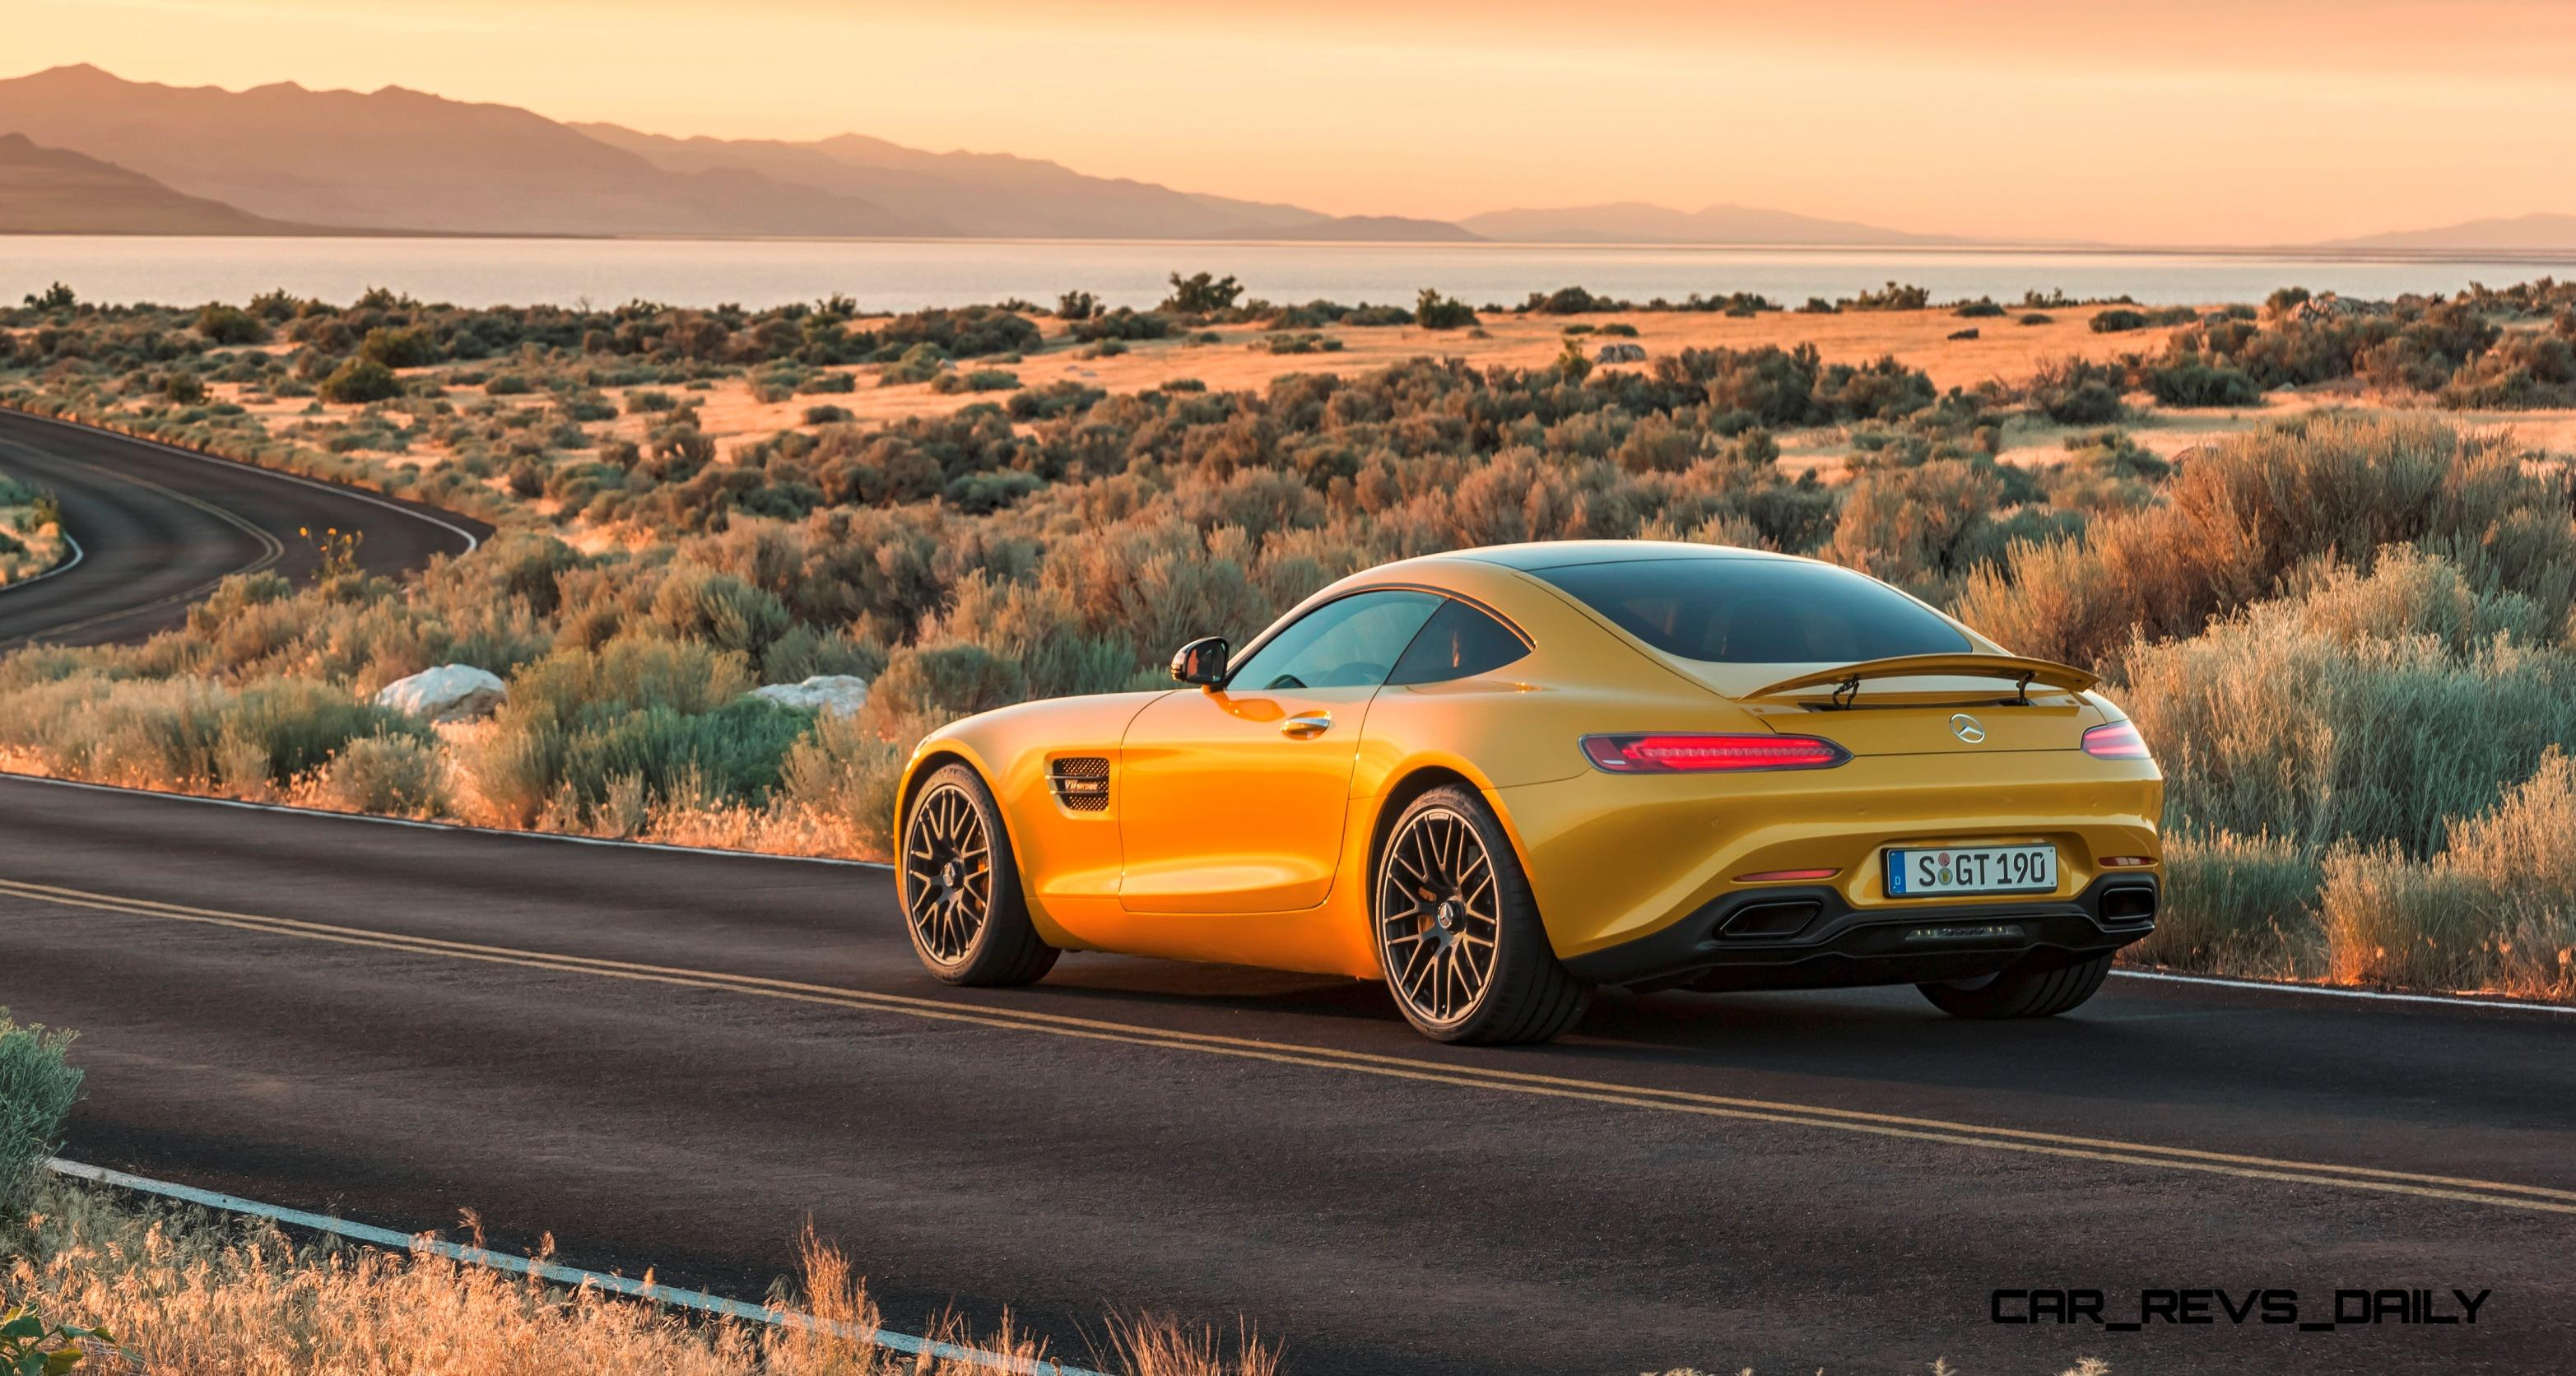 2016 mercedes benz amg gt s brings 503hp alloy chassis arriving to usa in spring 2015. Black Bedroom Furniture Sets. Home Design Ideas